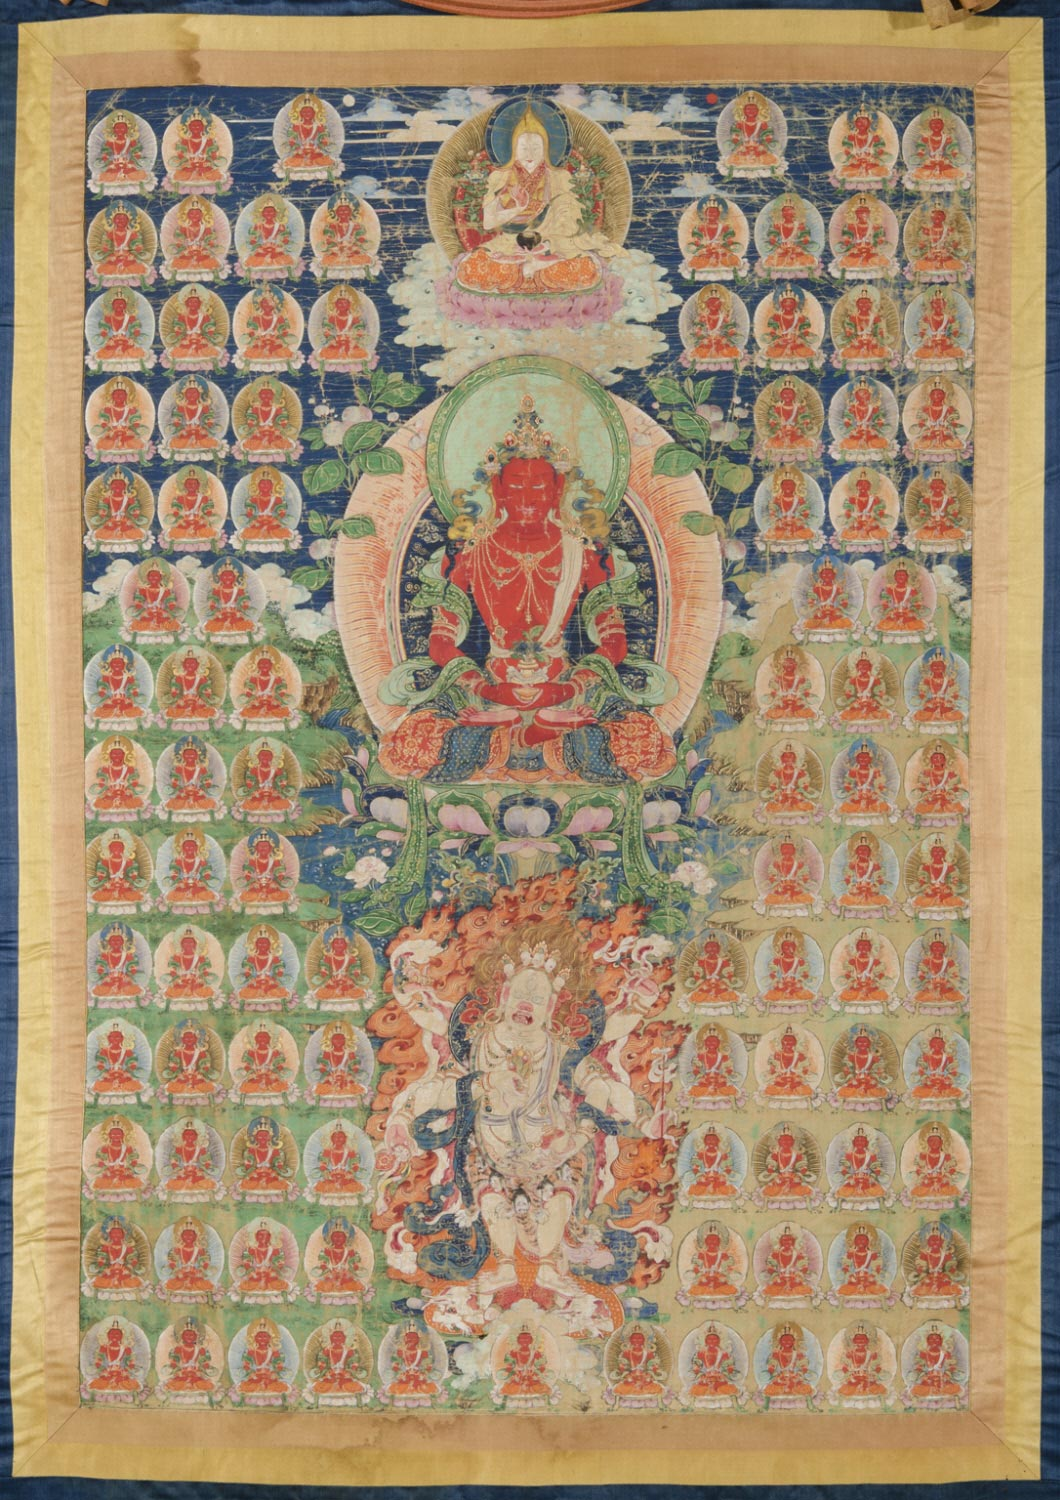 The Second Bogd Gegen, Six-Armed White Mahakala, and Amitayus in an Amitayus-Field